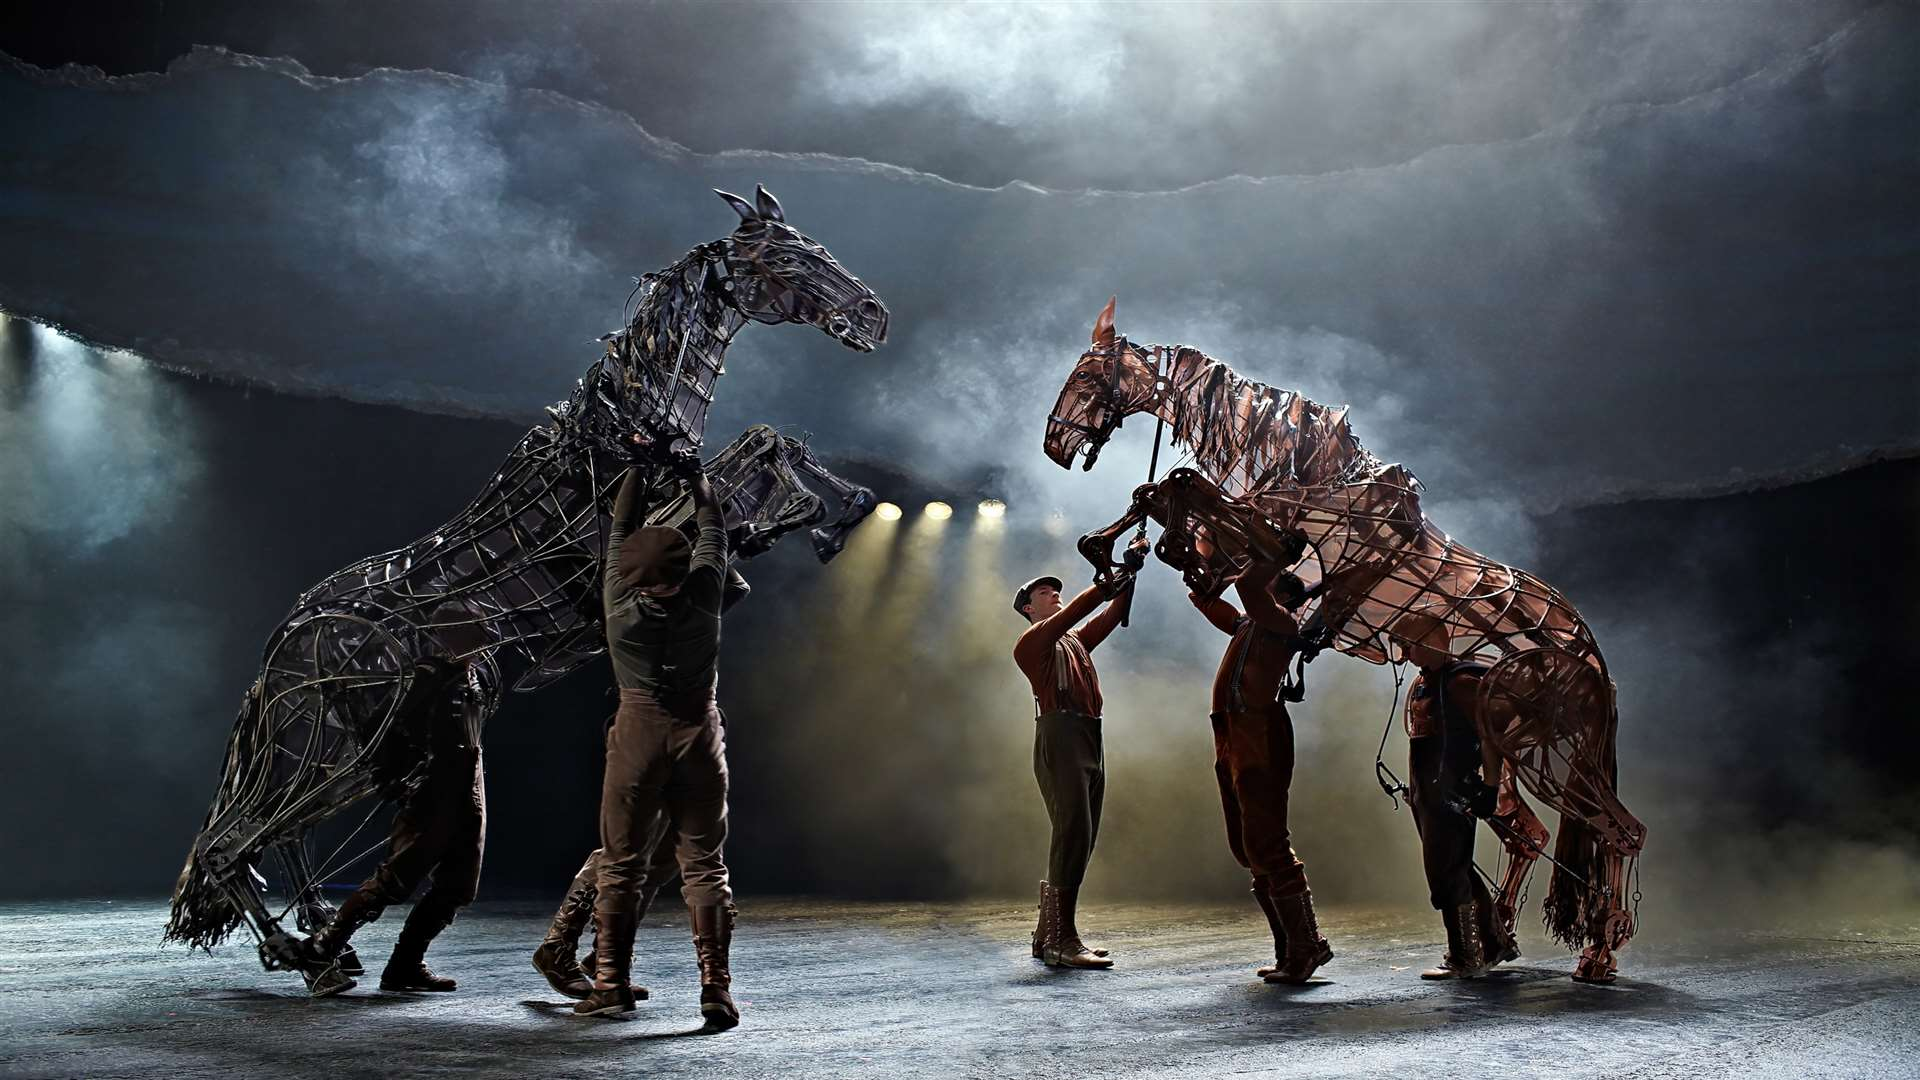 The National Theatre's War Horse is at the Marlowe for its 10th anniversary